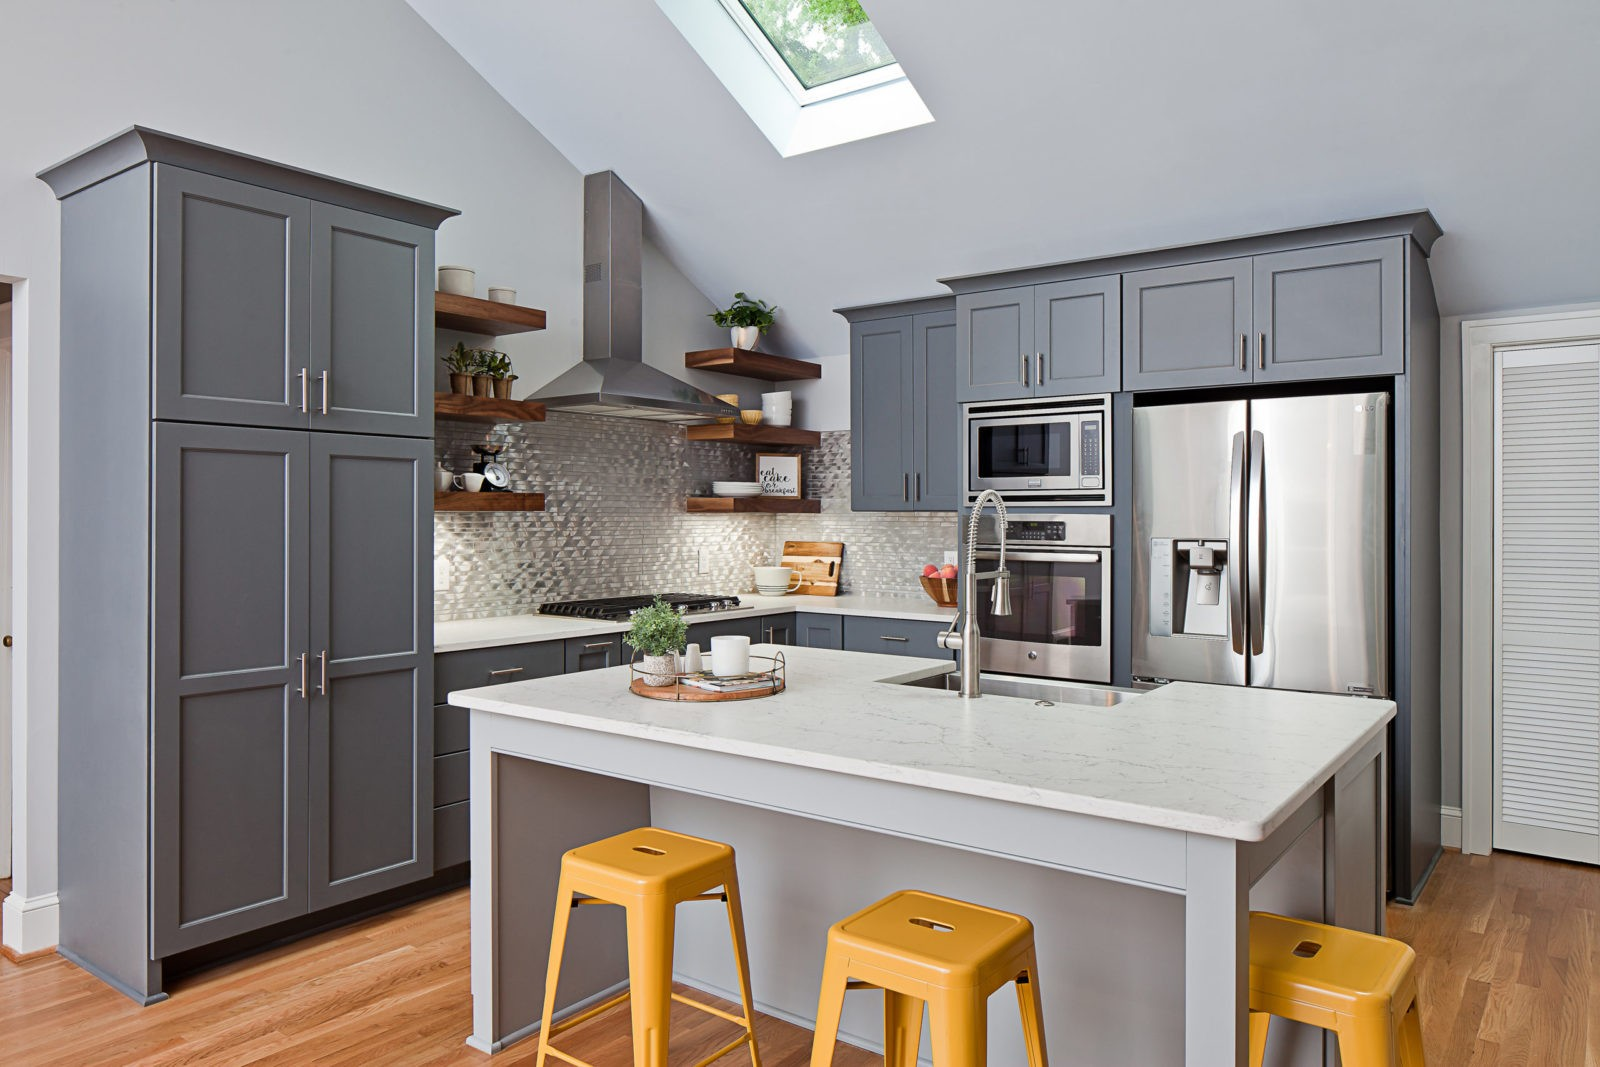 Open Concept Kitchen with Island in Plaza Midwood